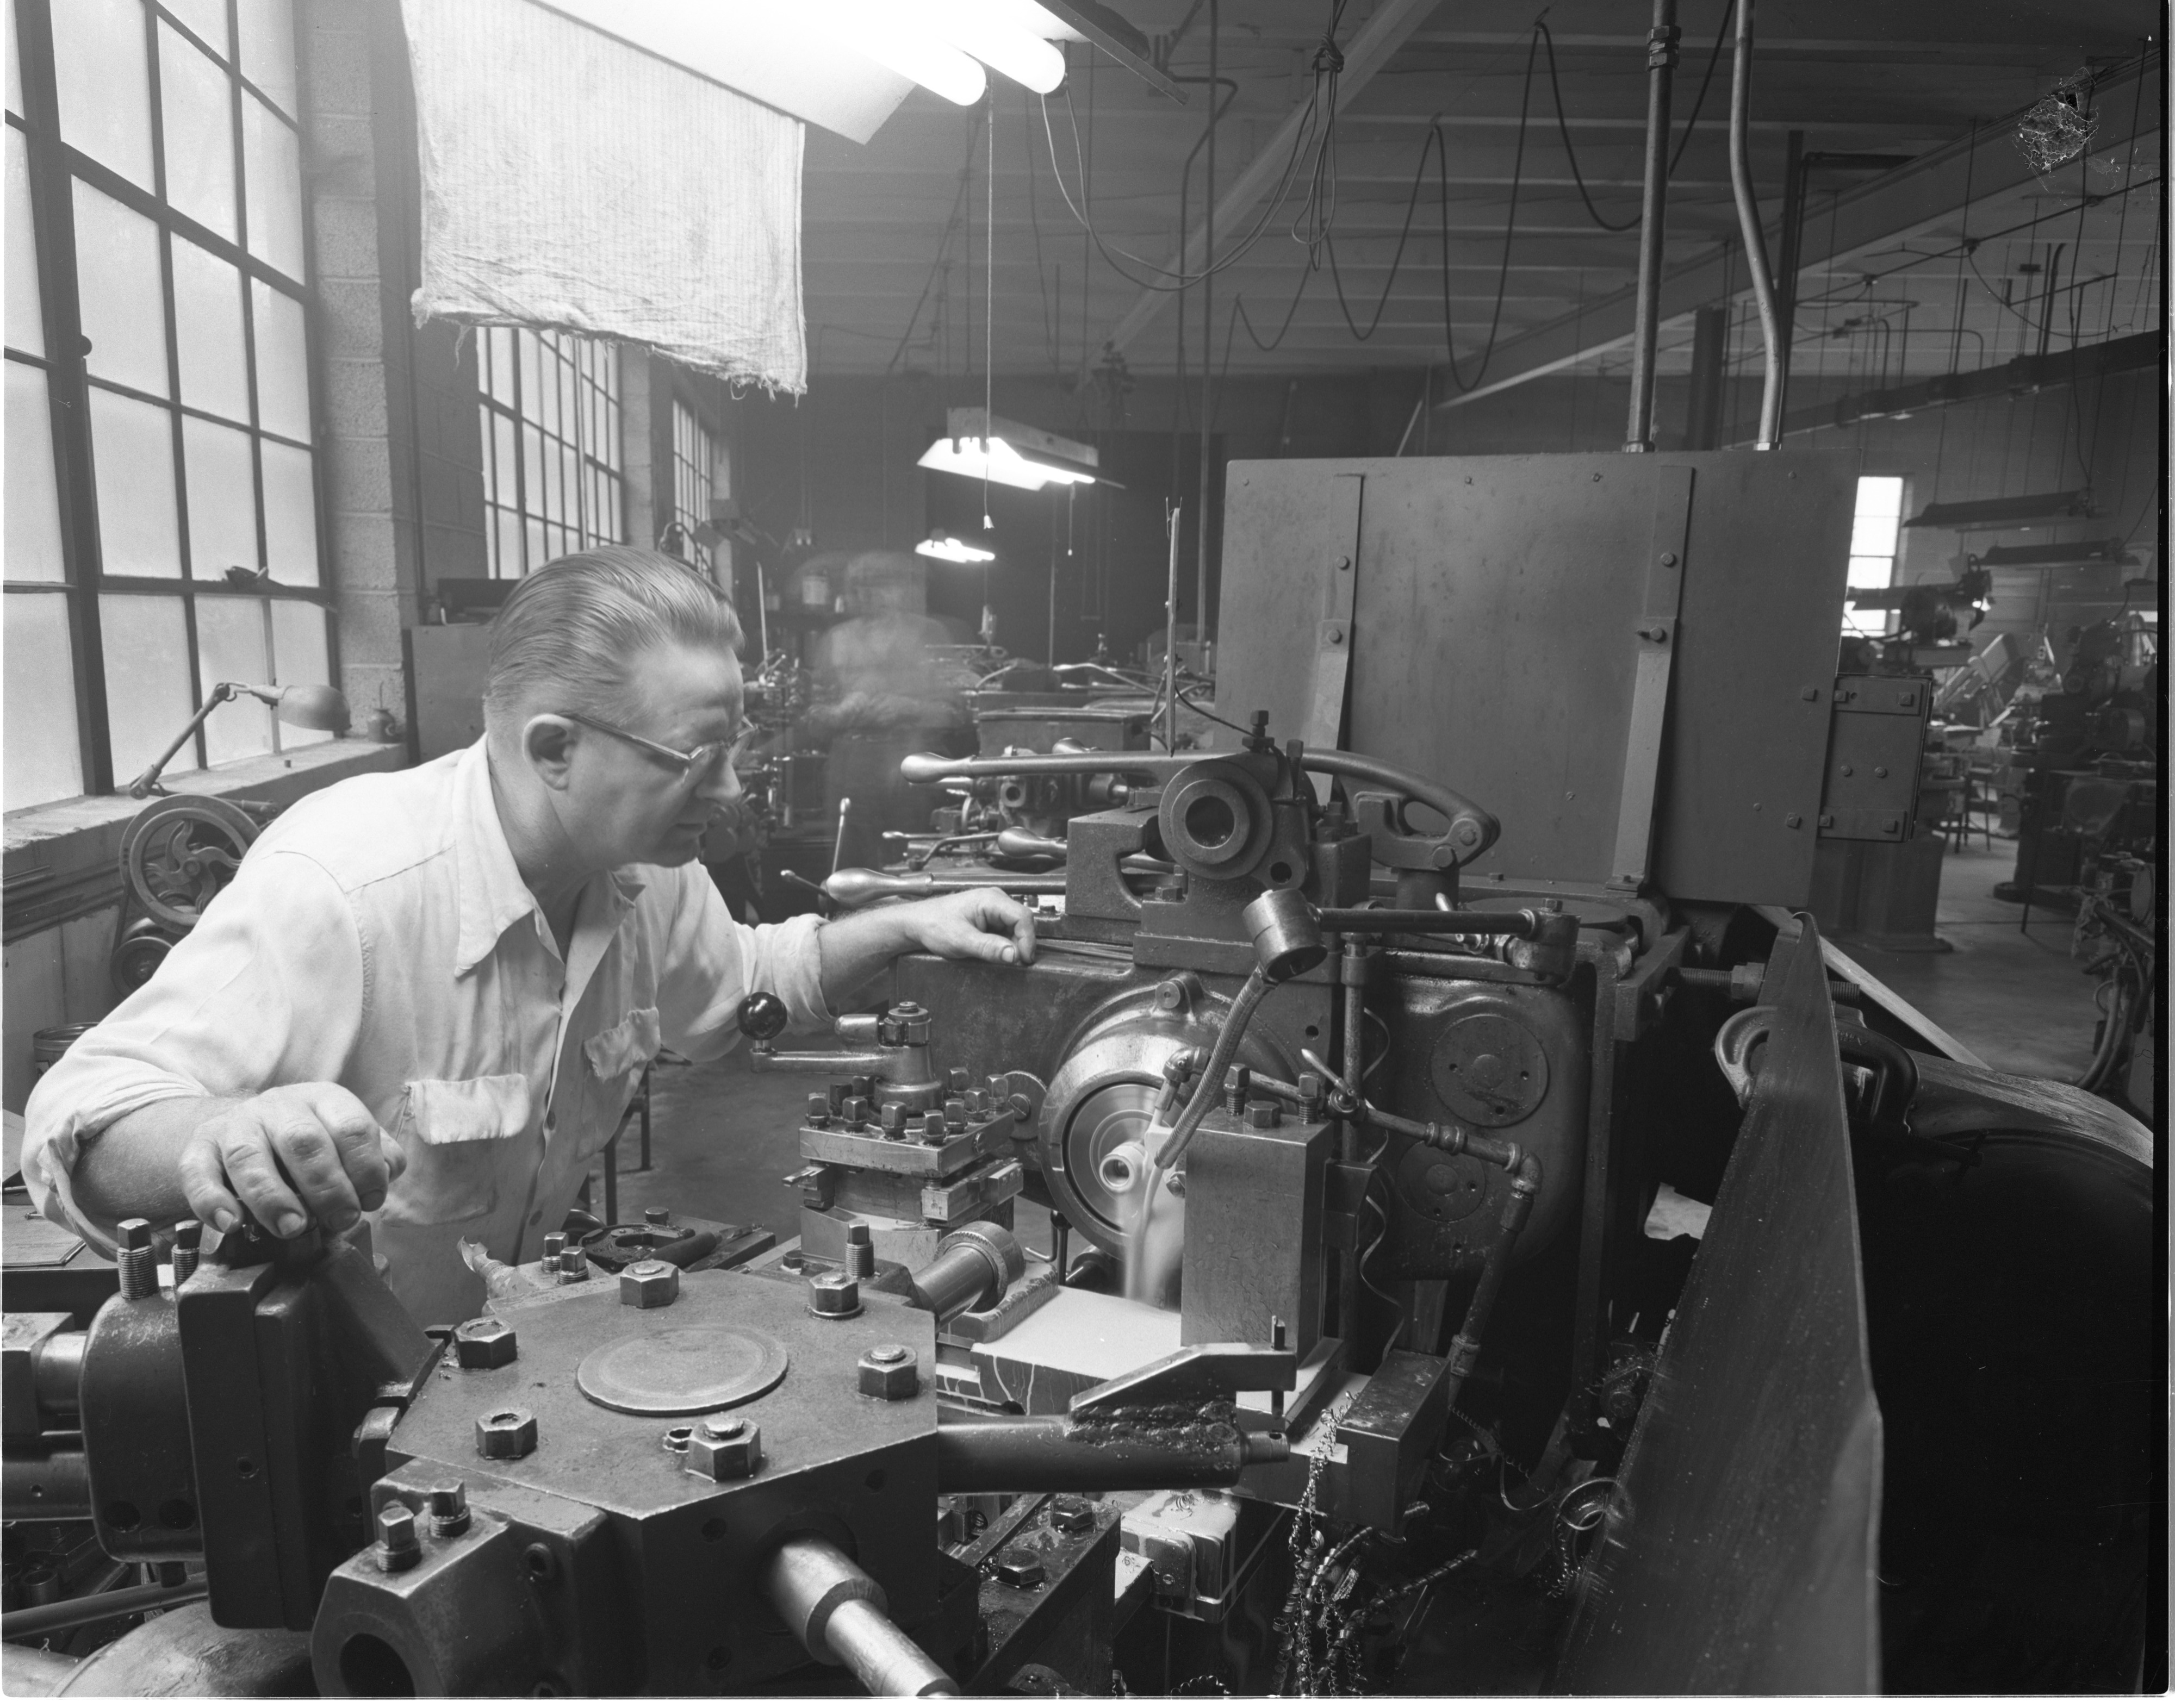 Arthur Bauer Operates A Turret Lathe At The Morton Bearing Company, December 1954 image